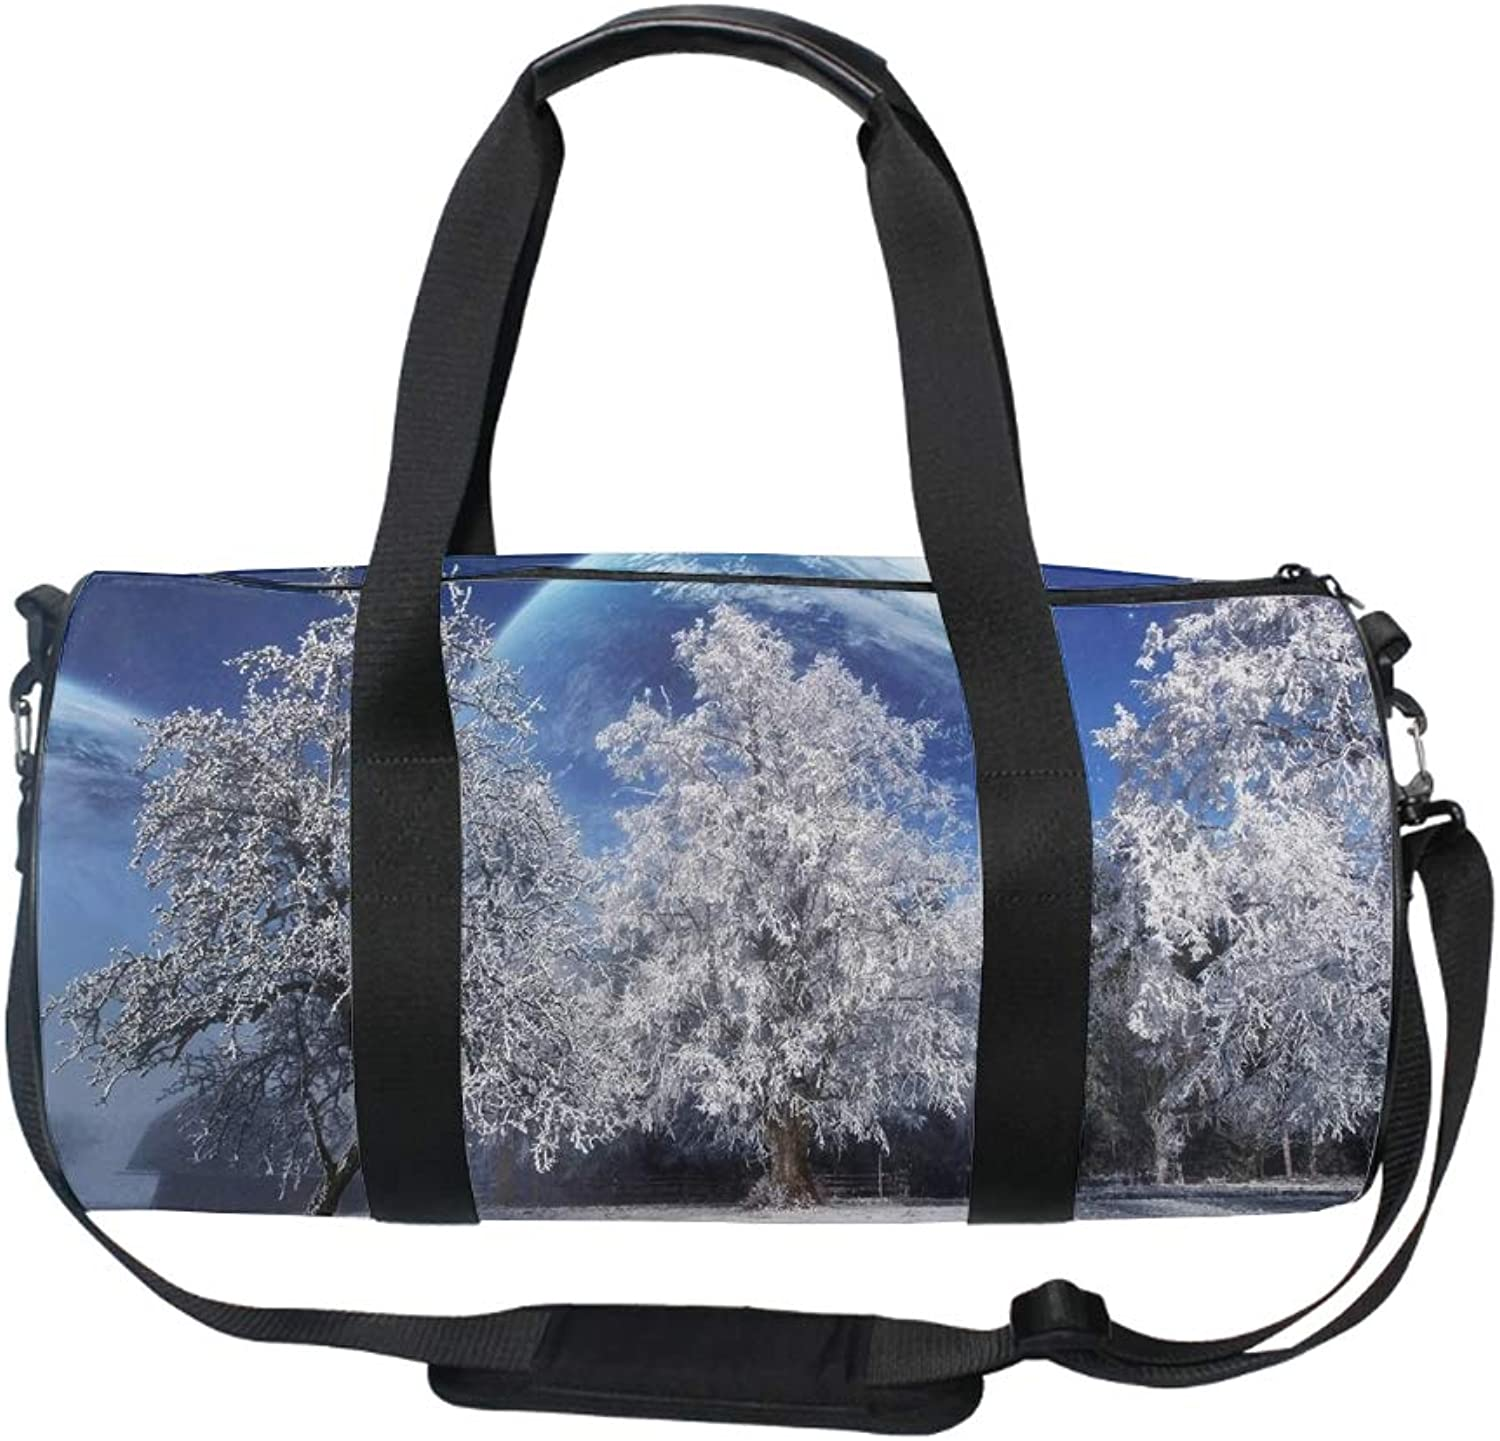 Gym Bag Winter Scenery Sports Travel Duffel Lightweight Canvas Bag